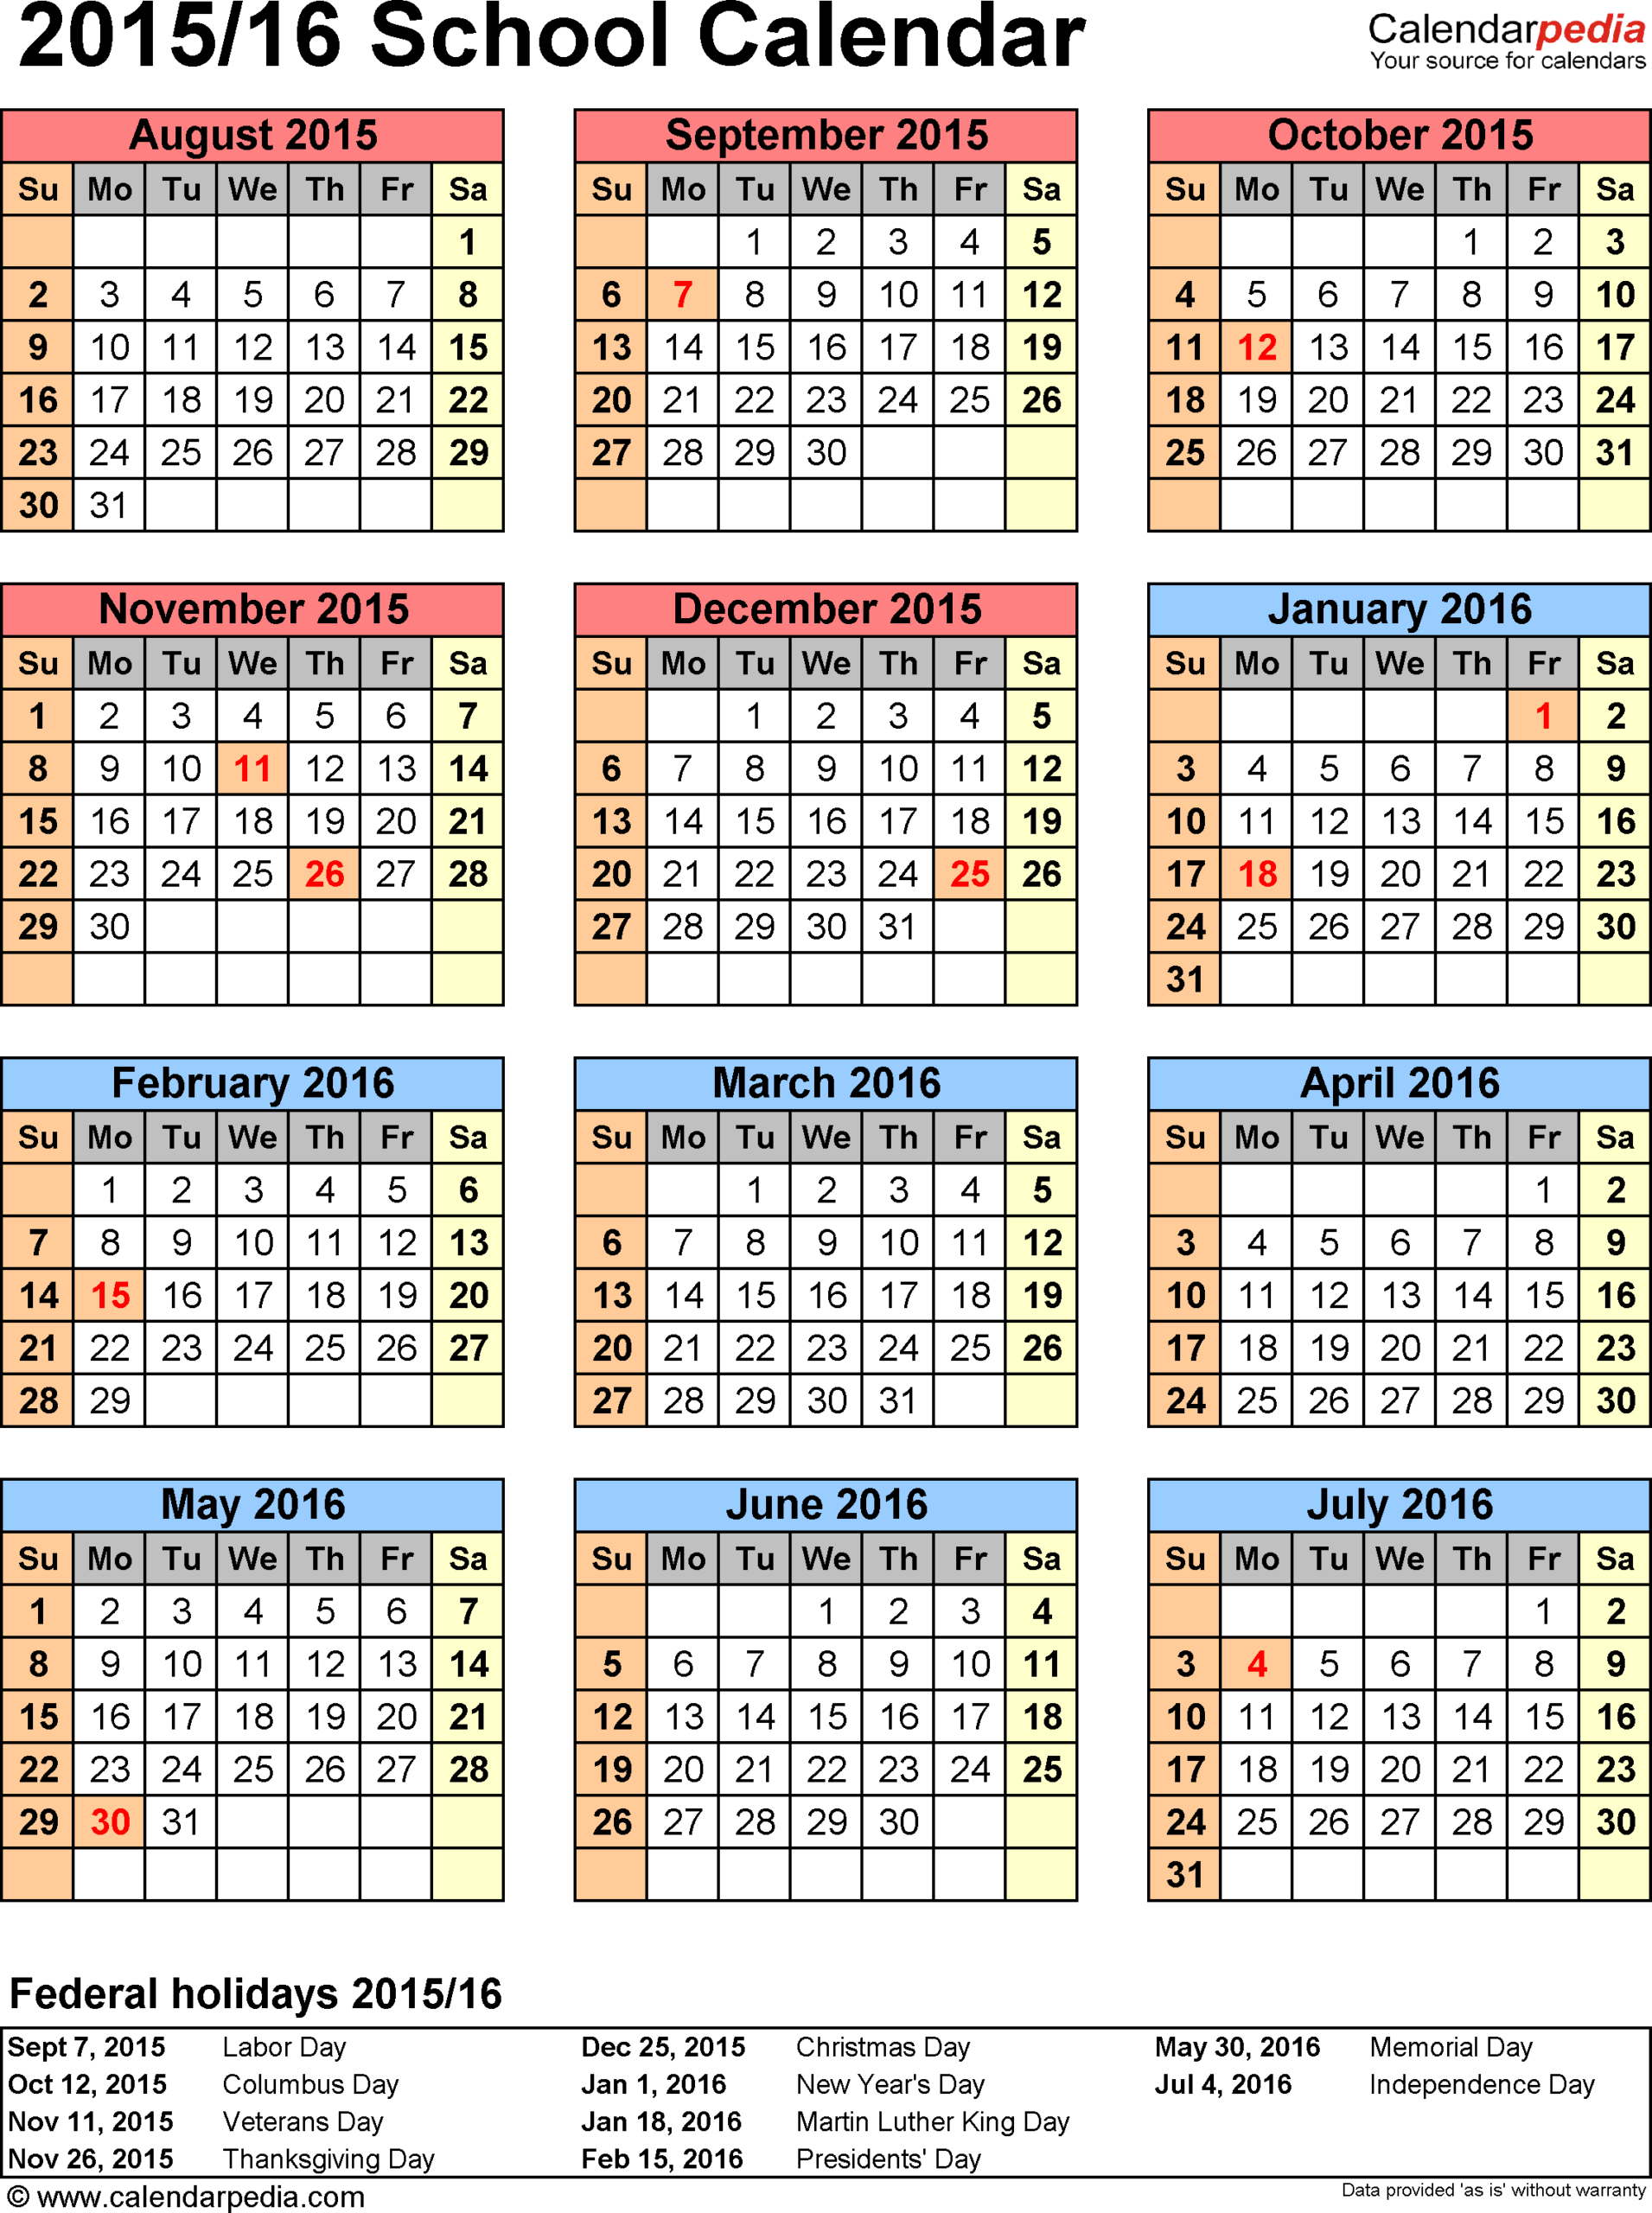 Template 6: School Calendar 2015/16 For Word, Portrait